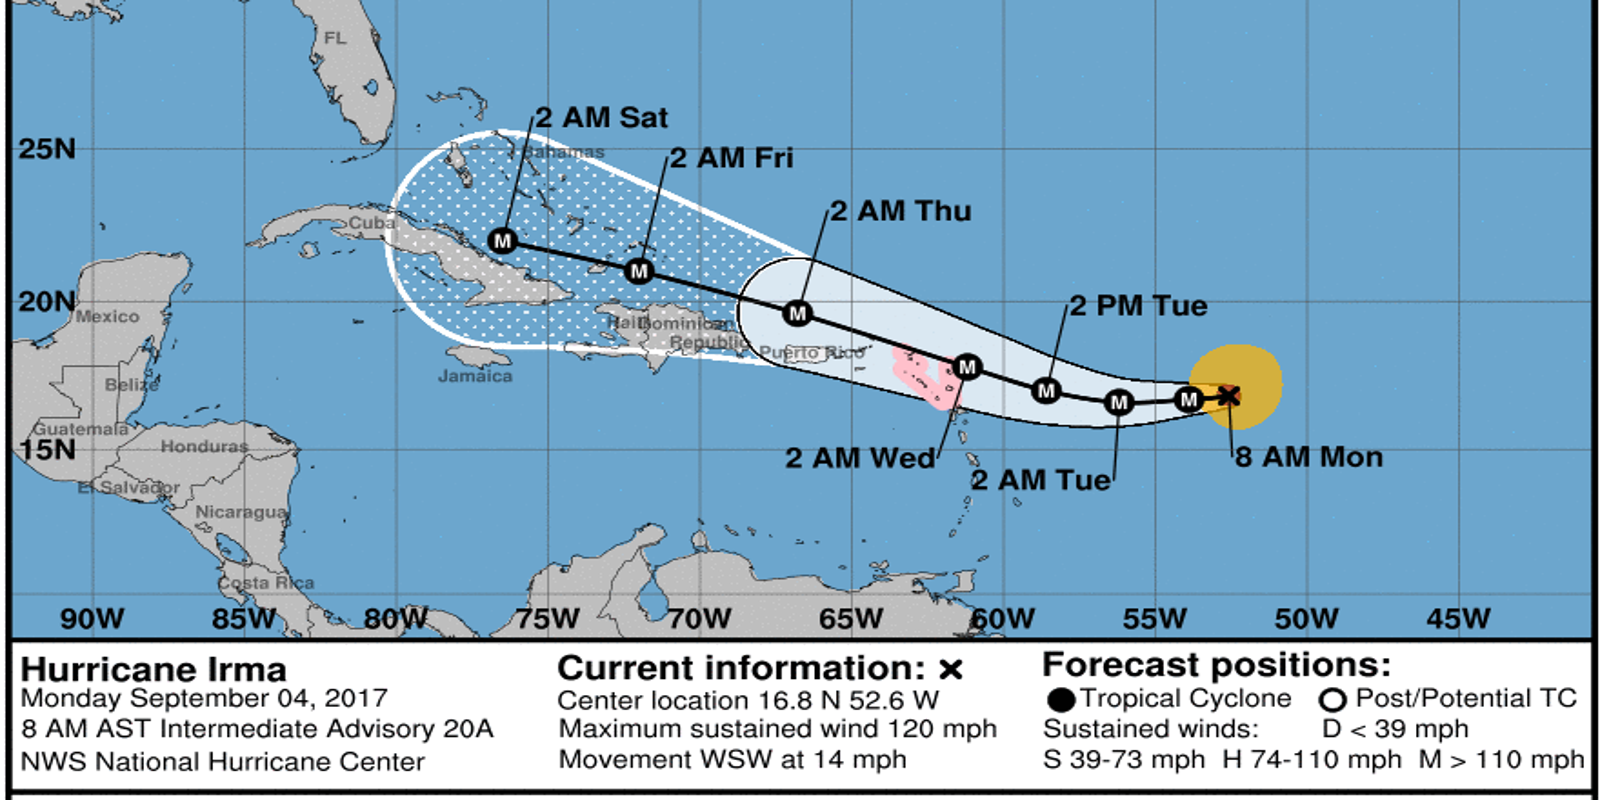 Hurricane Irma winds at 120 mph; Florida will see some impact